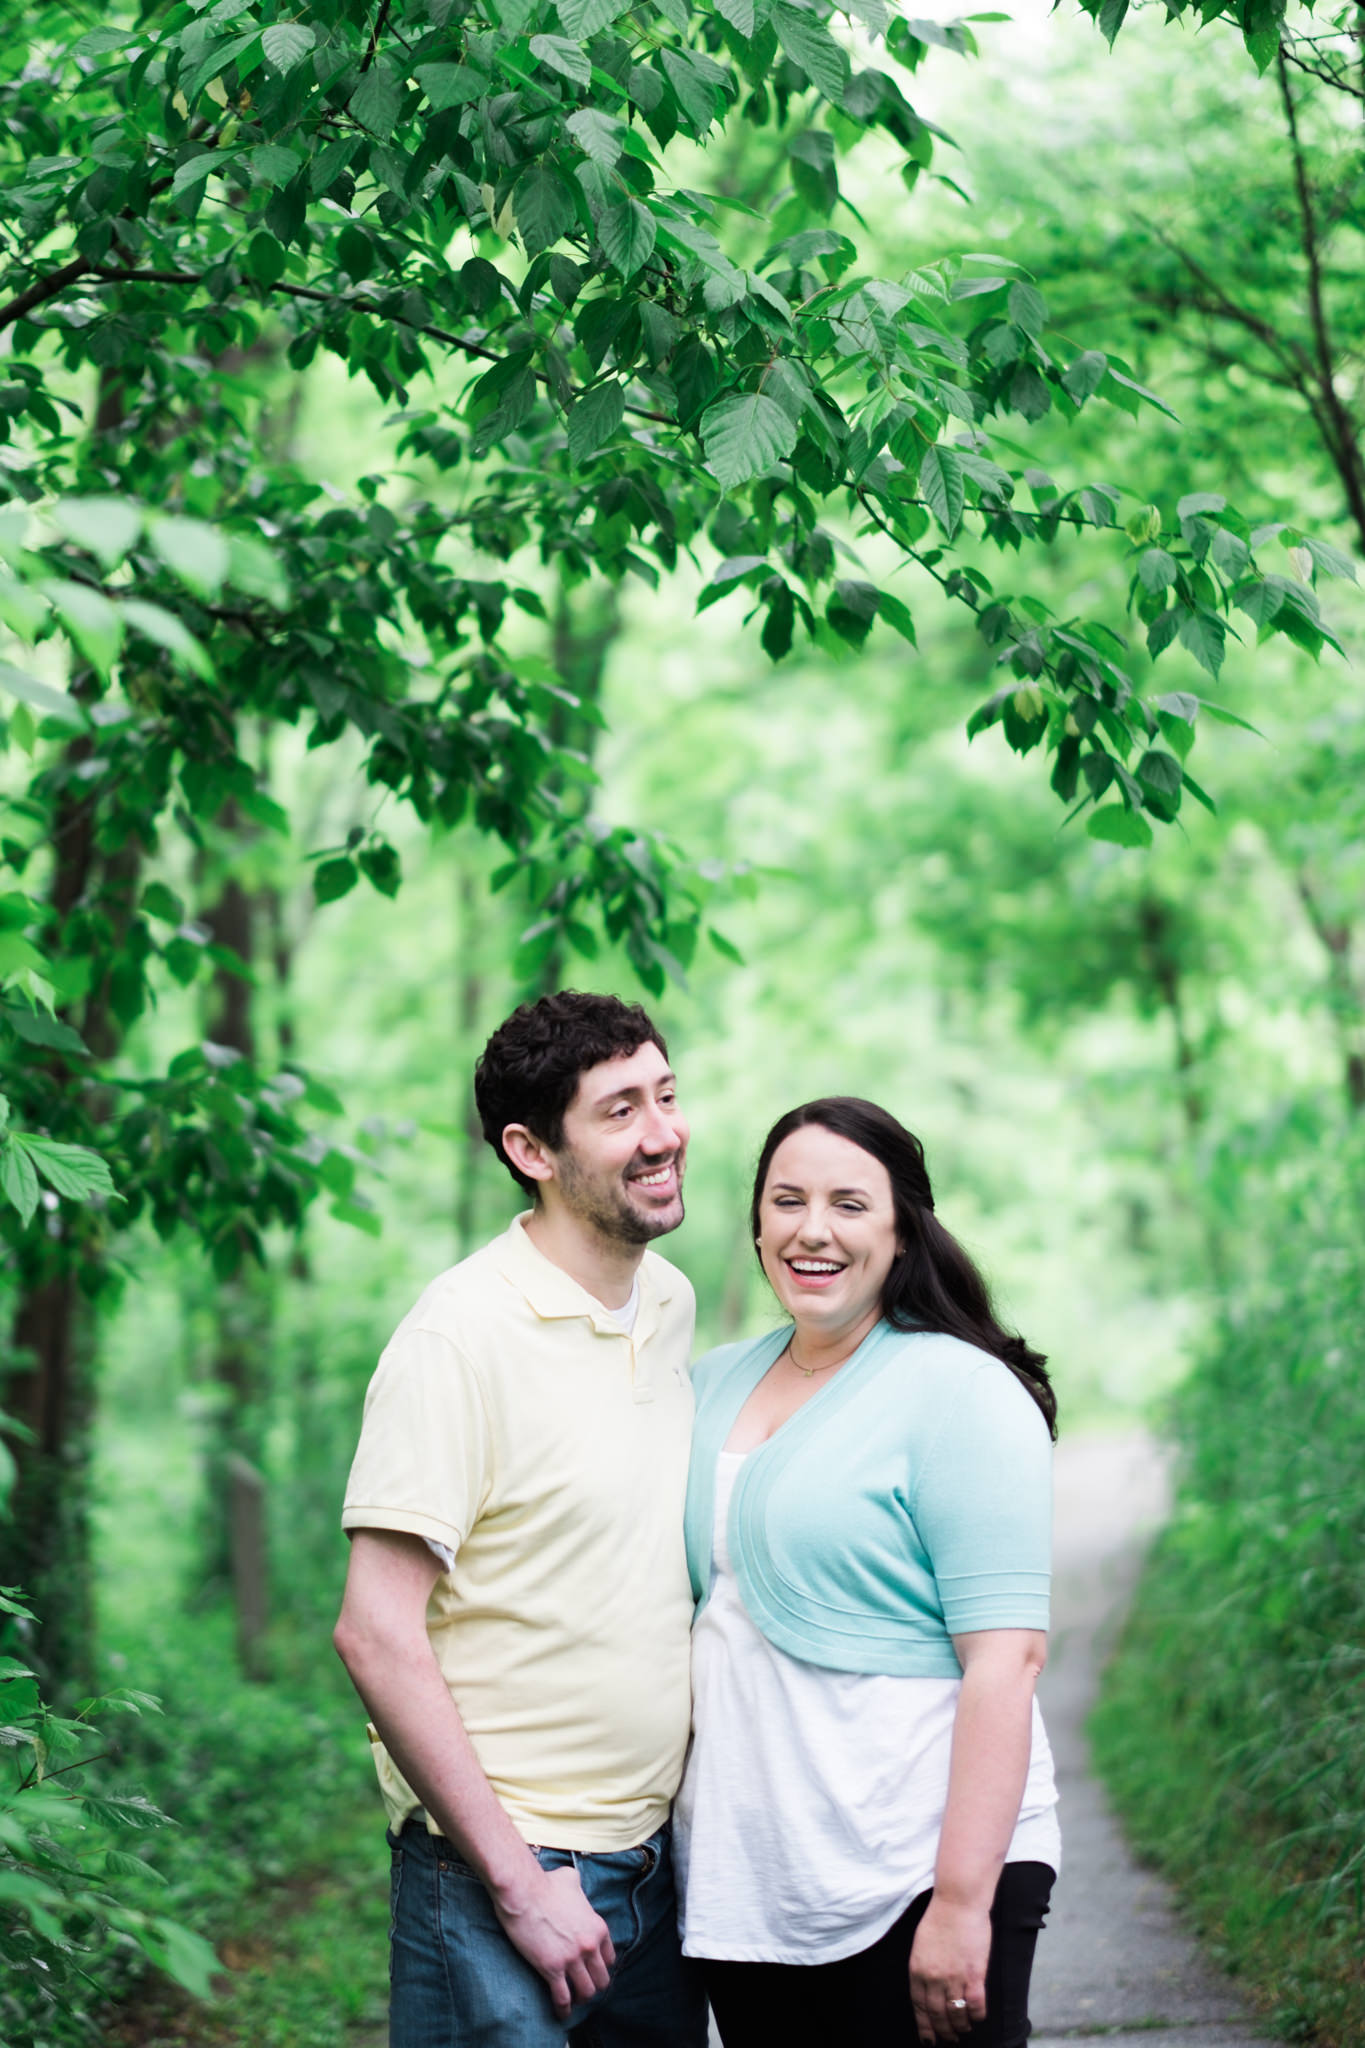 Lee&Steven_Engagement_Blog_0003.jpg